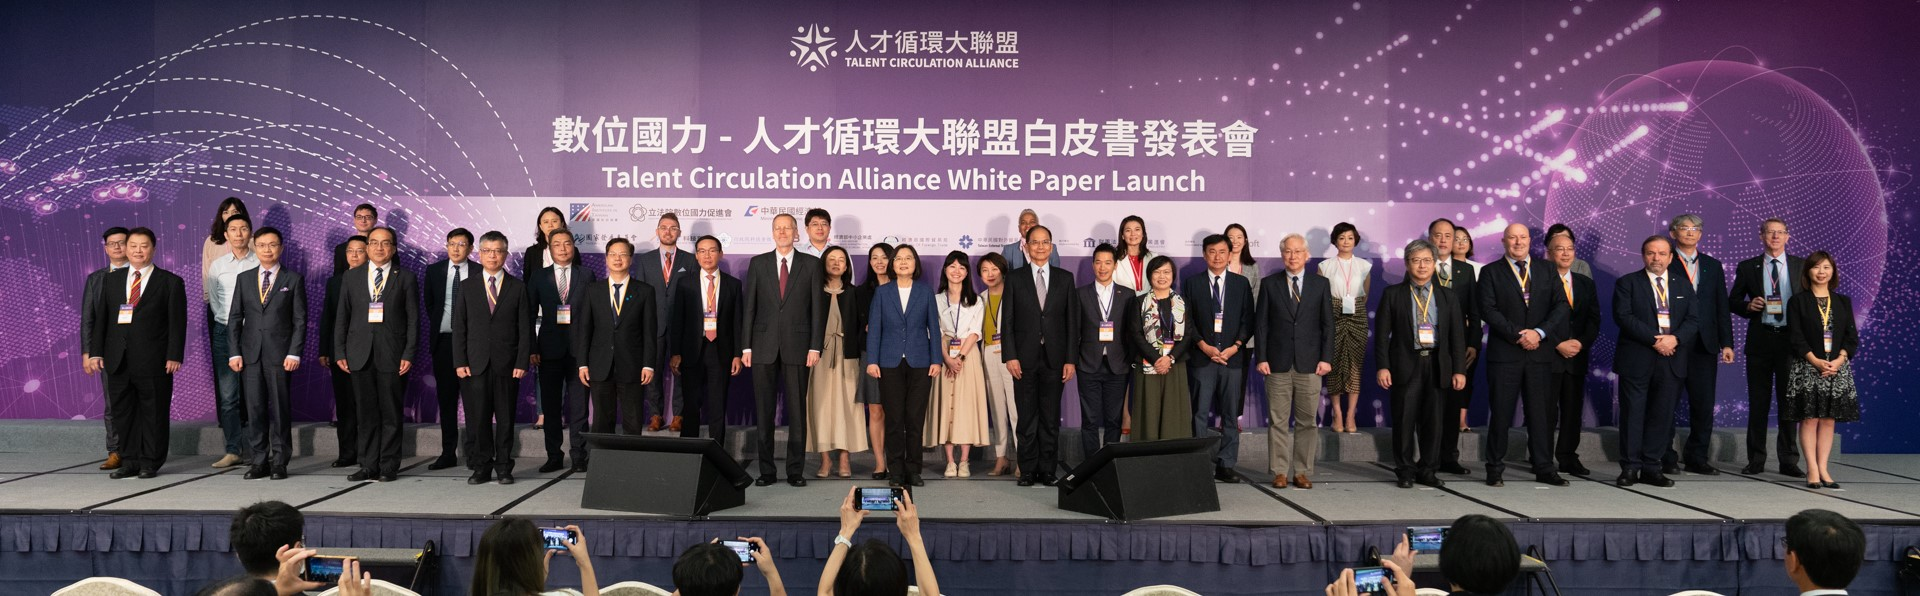 Talent Circulation Alliance White Paper Launch at TICC, Taipei on June 12th.